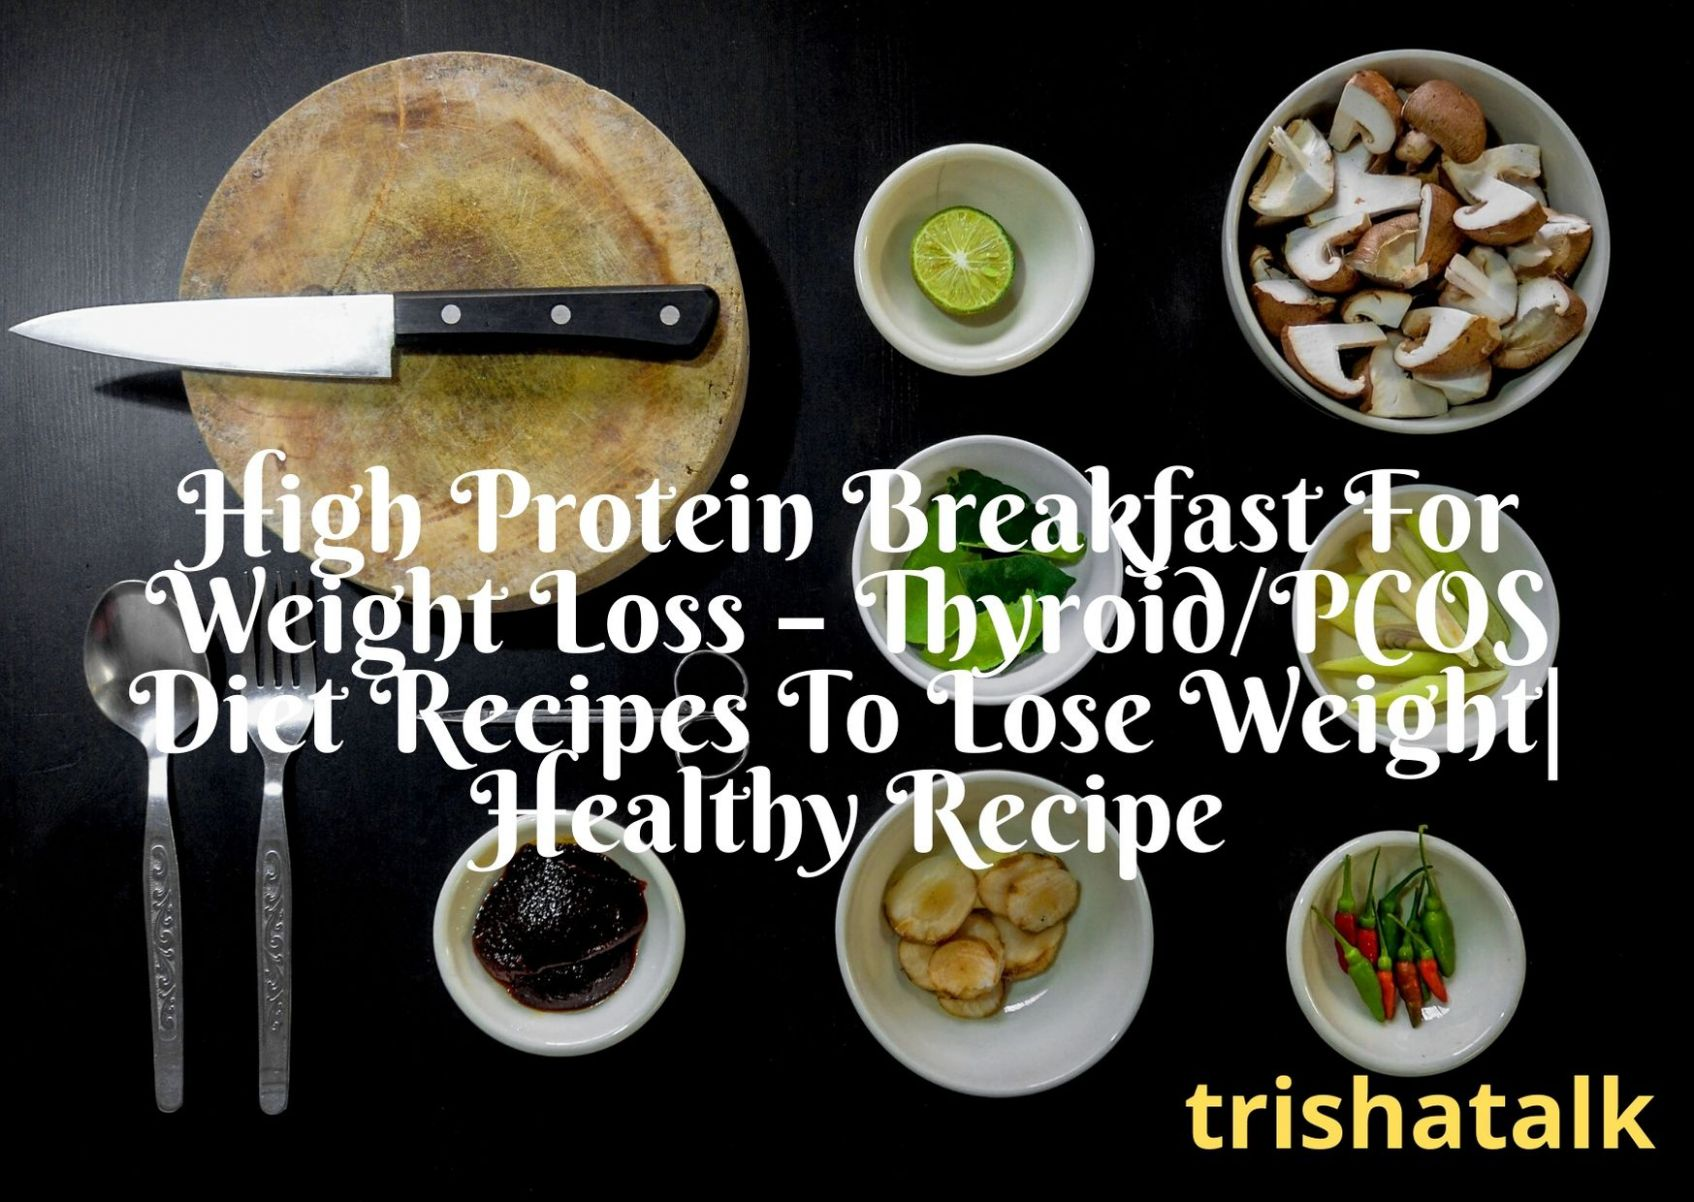 High Protein Breakfast For Weight Loss - Thyroid/PCOS Diet Recipes ...